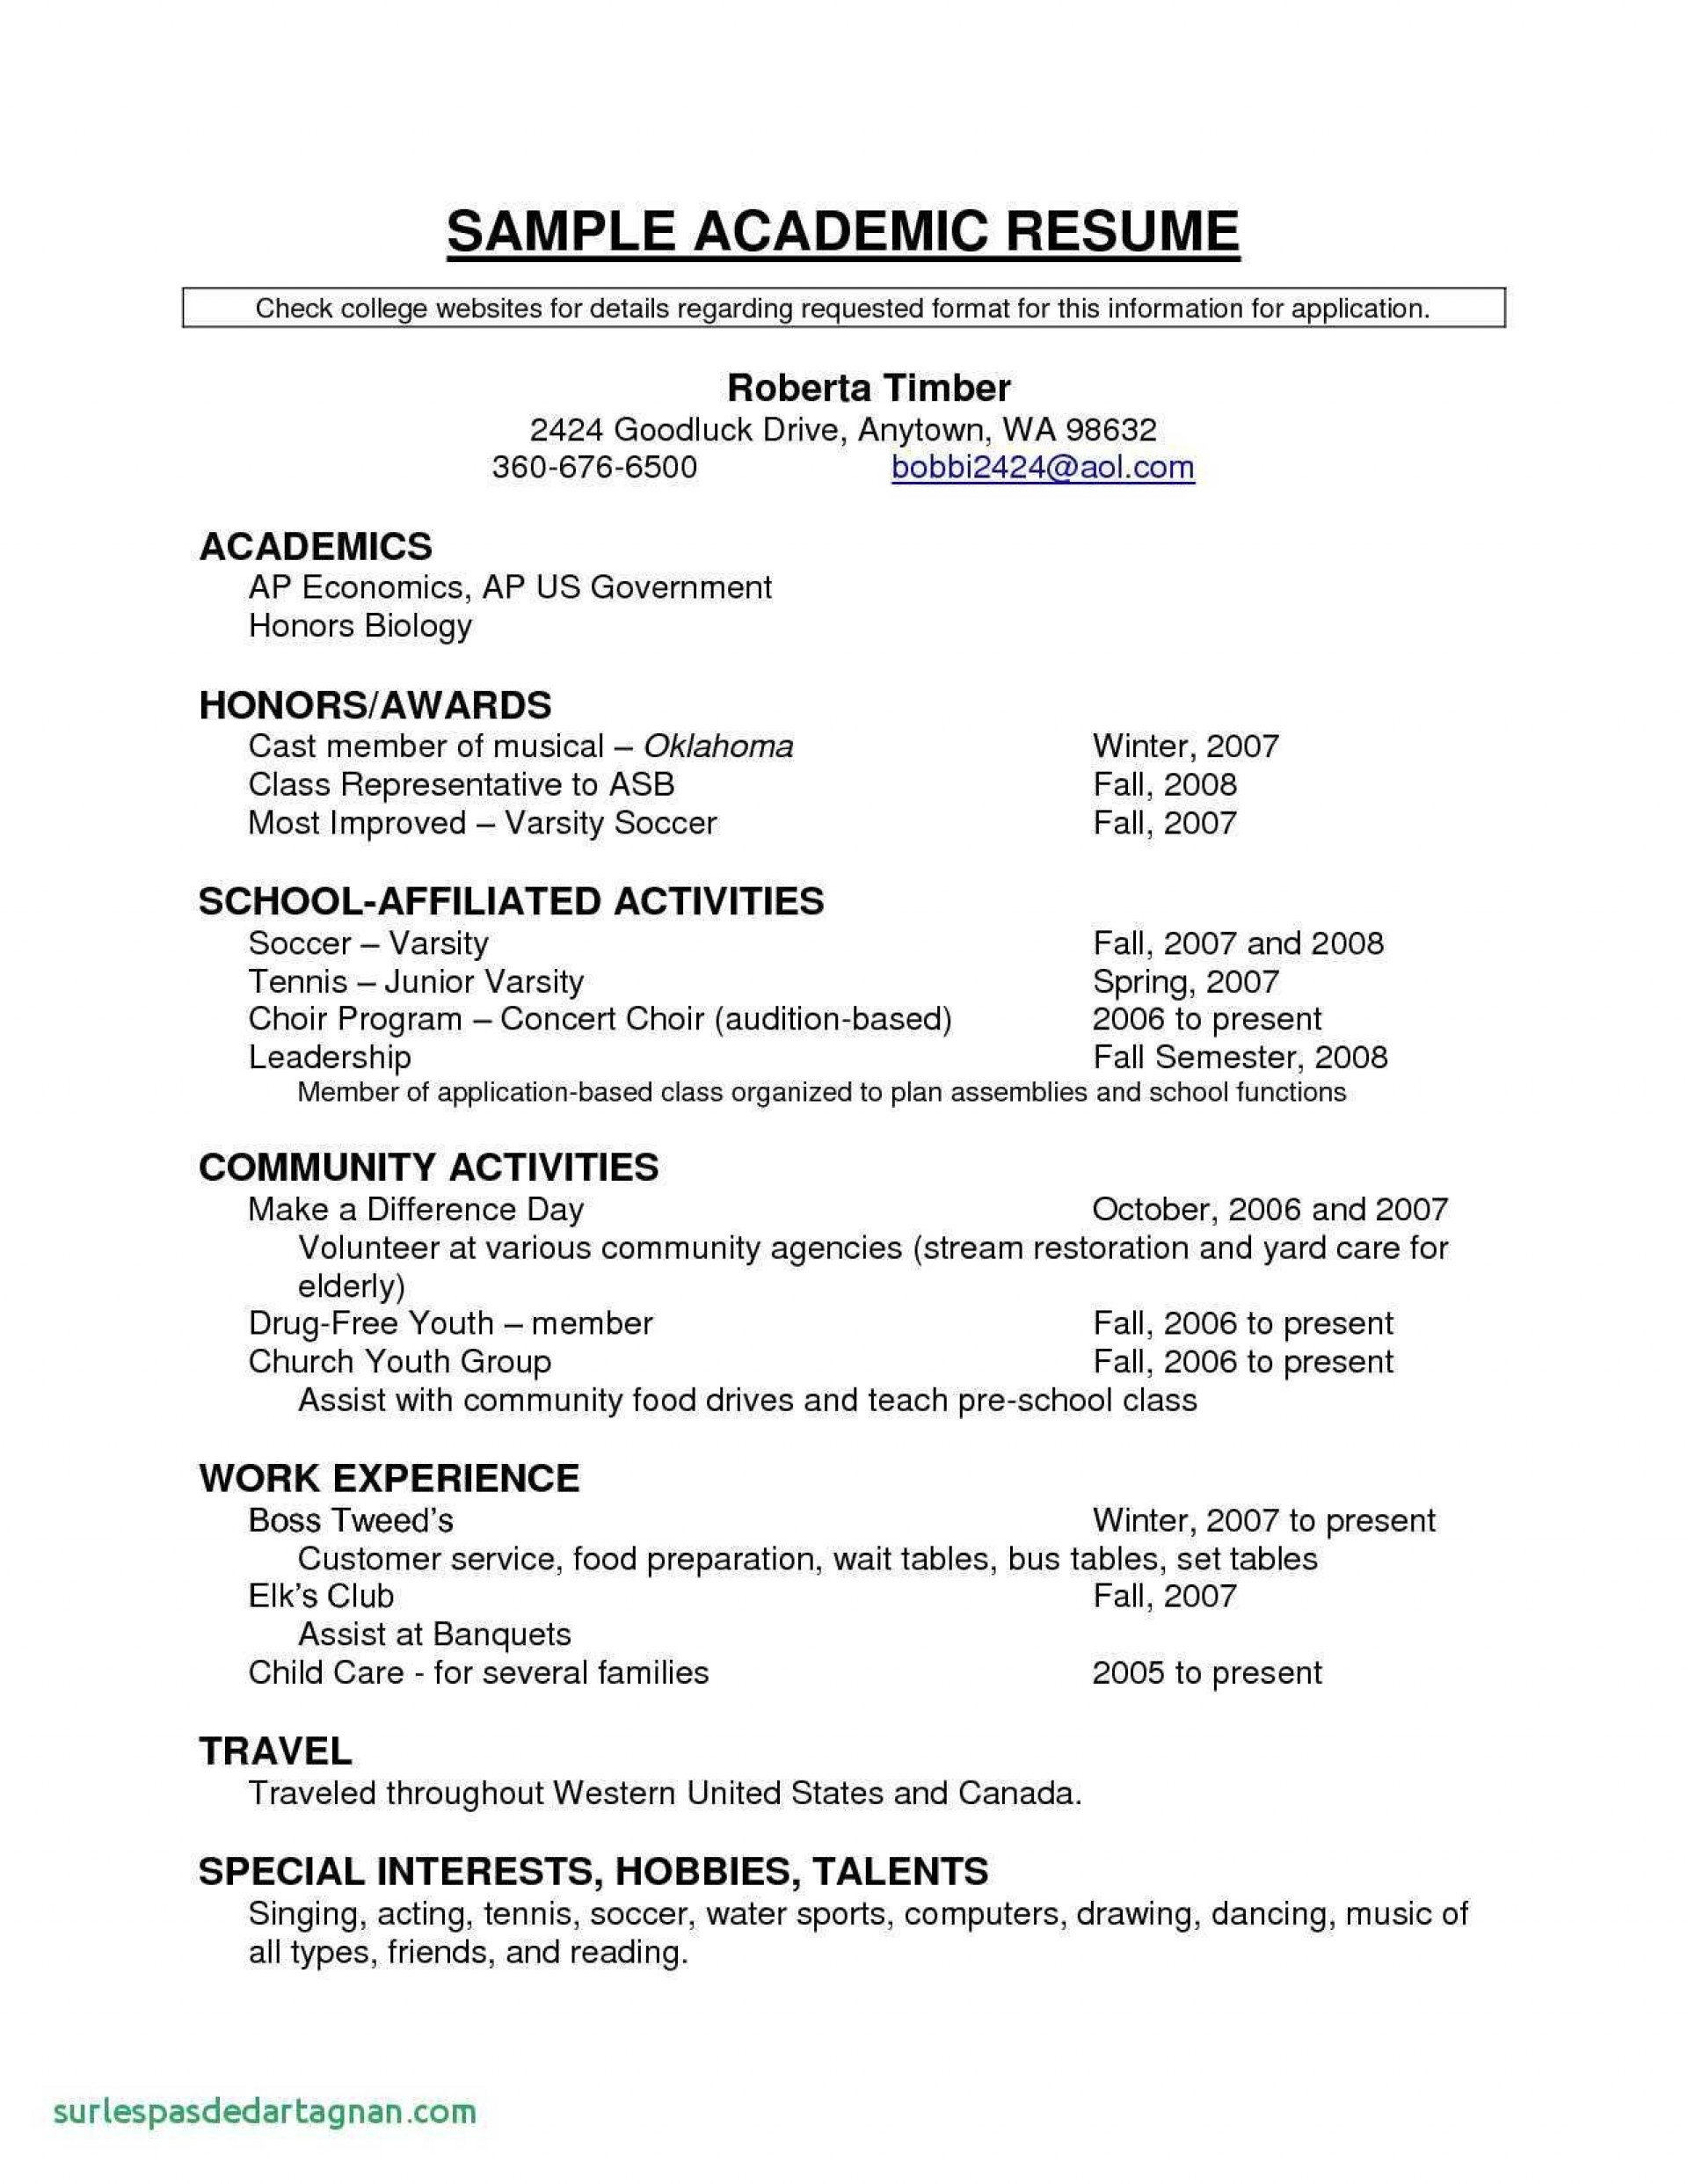 013 Answering Questions In Essay Format Student Resume Samples Luxury Sample For From American How To Write Awards On Of Unforgettable Apa Multiple 1920